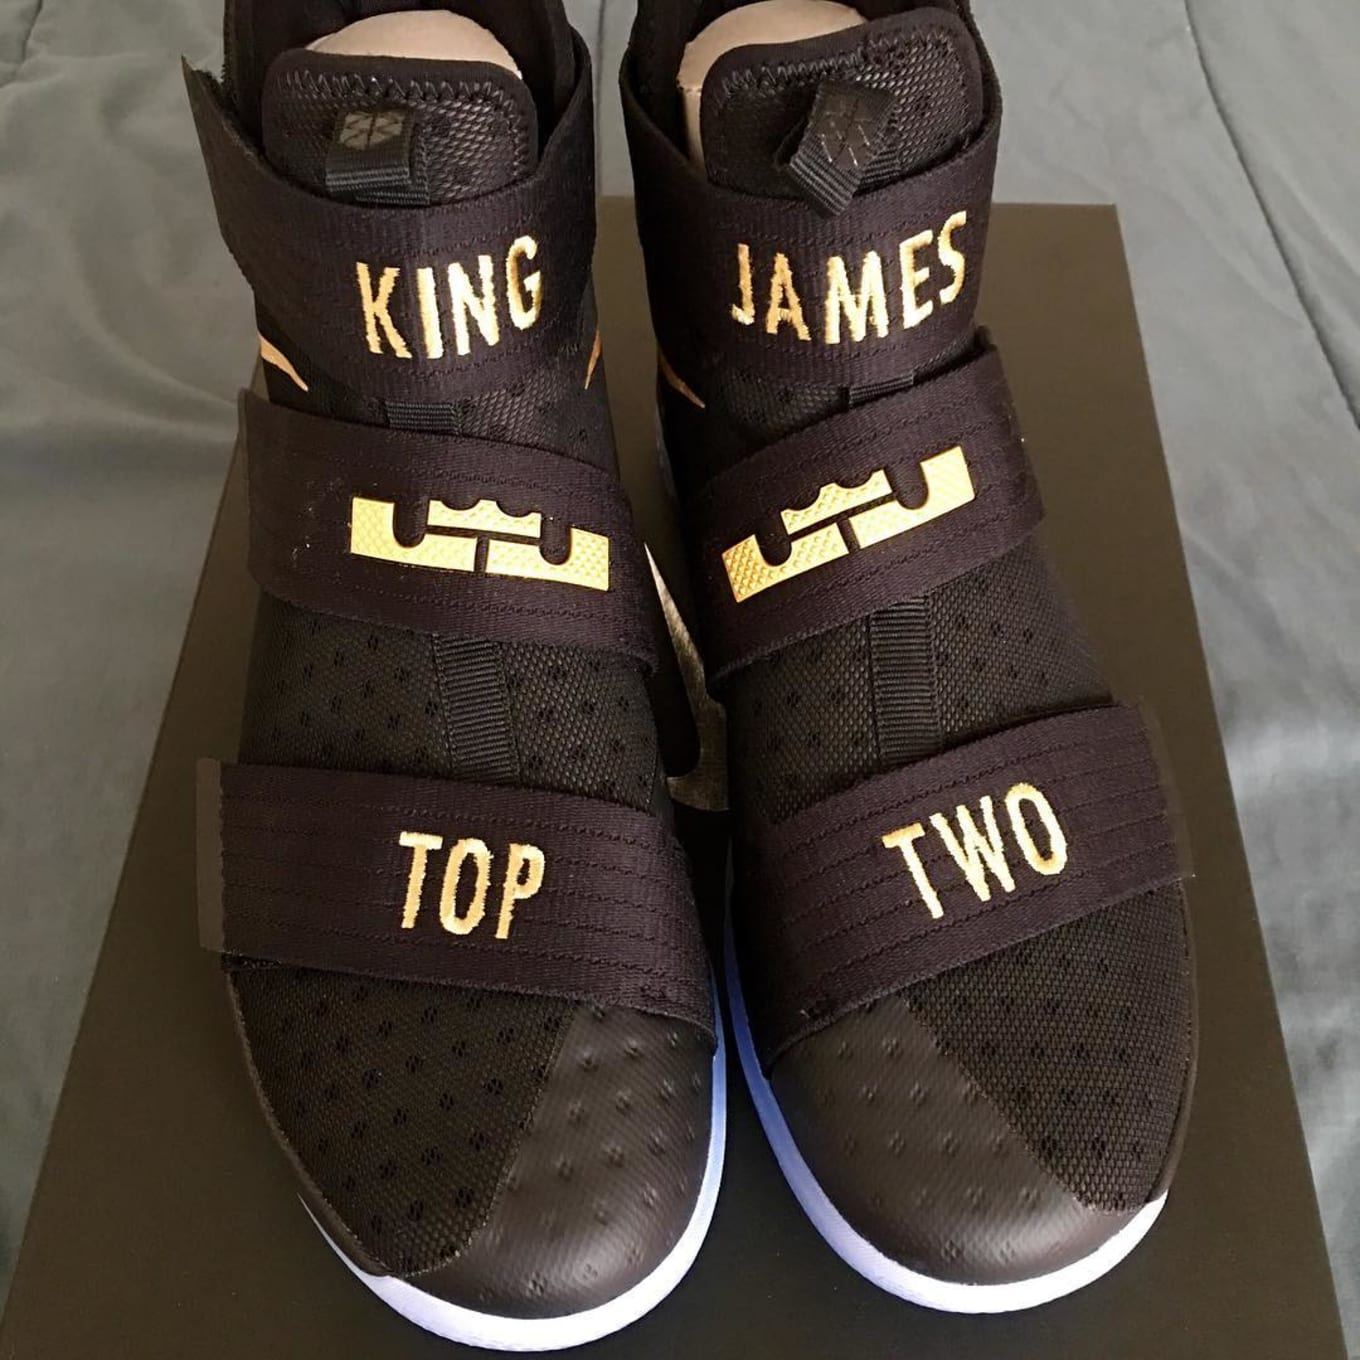 0a0d32dc5c498 10 Ways People Customized LeBron James  Championship Sneakers